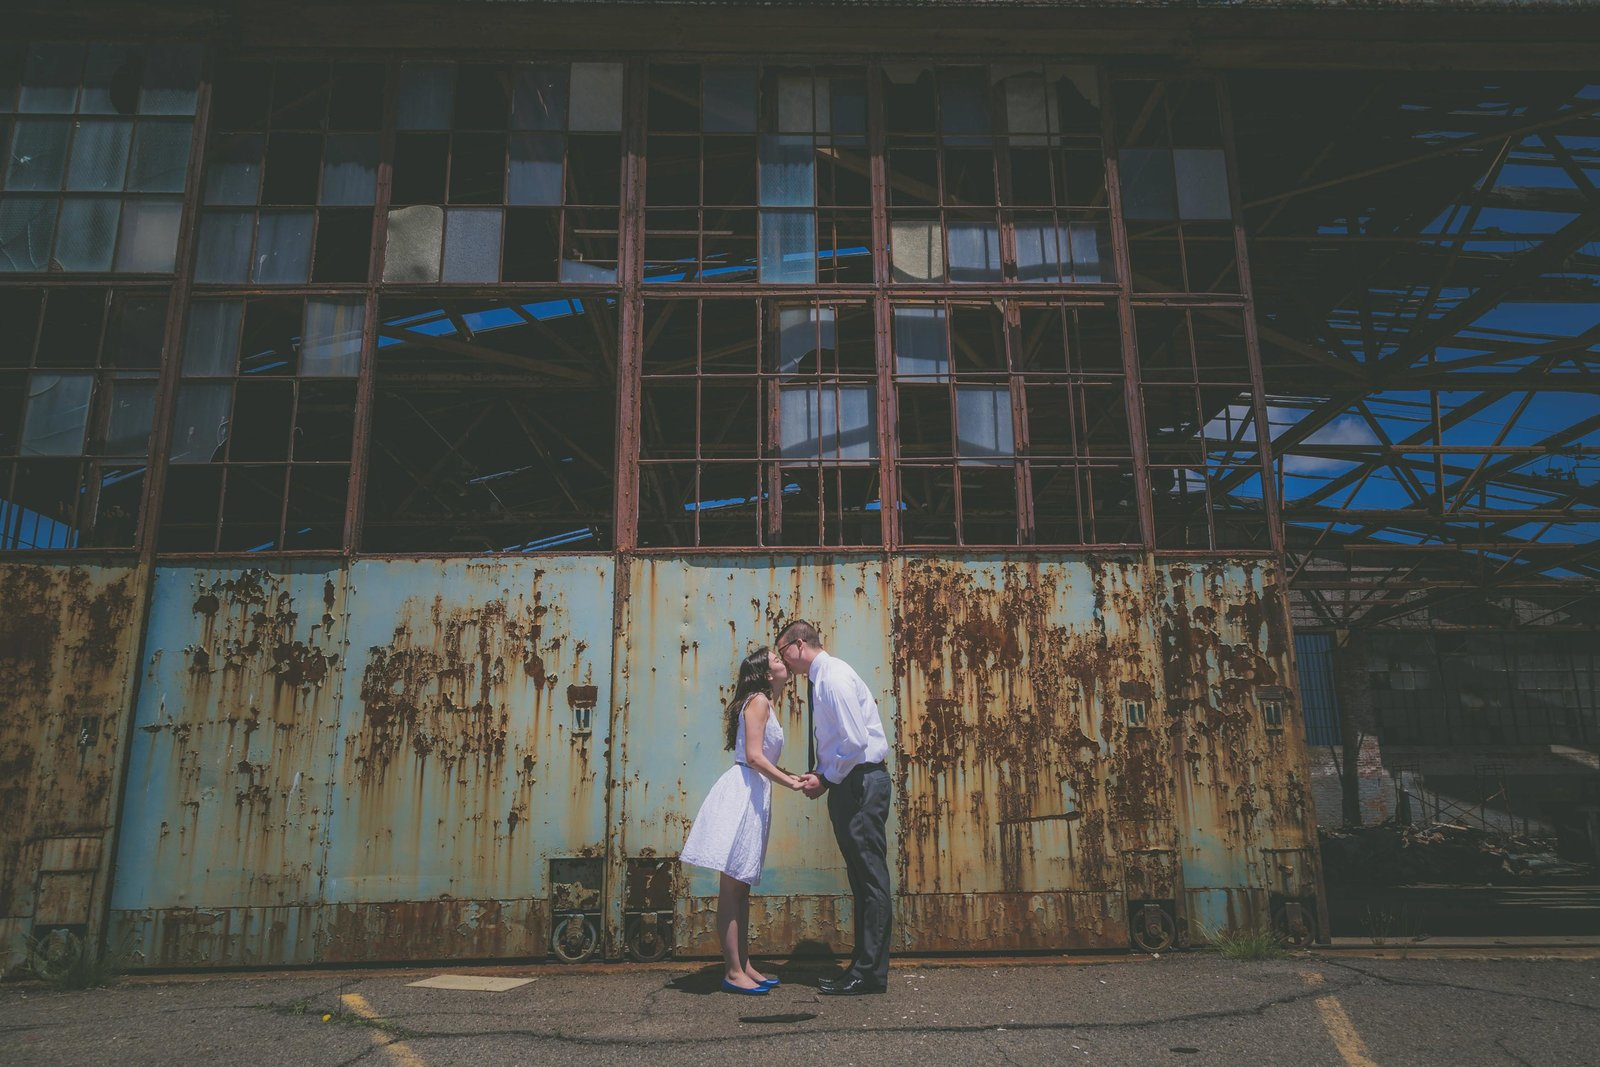 Couple kisses against rusty airplane hanger background.